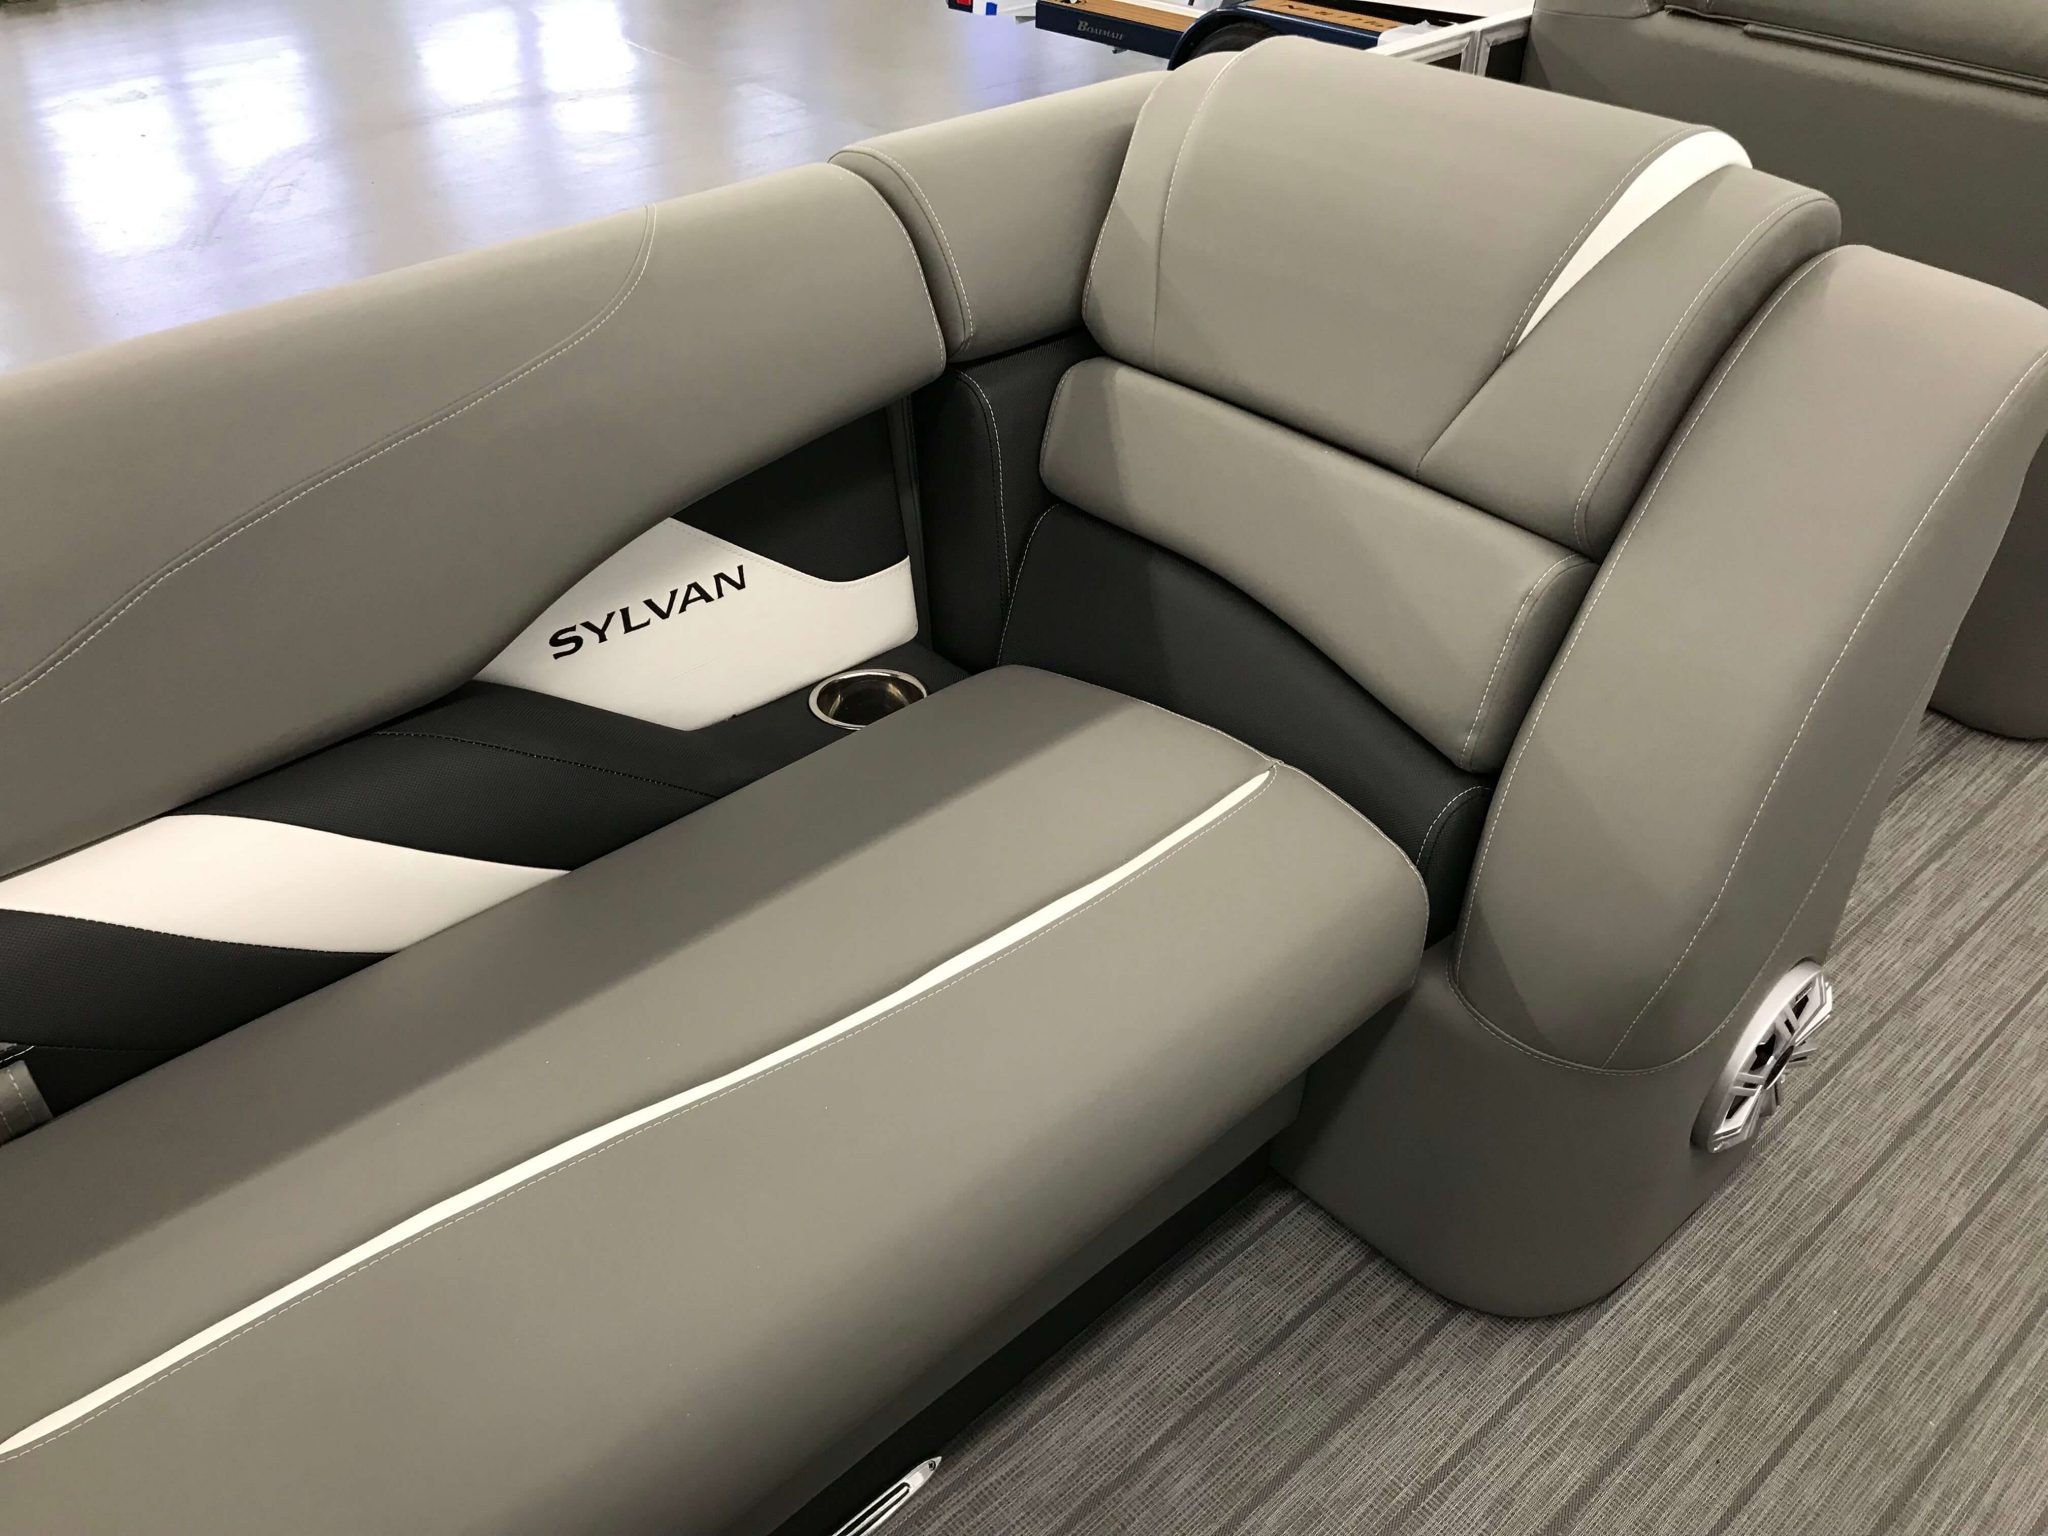 2019 Sylvan S3 Cruise Tritoon Interior Cockpit Seating